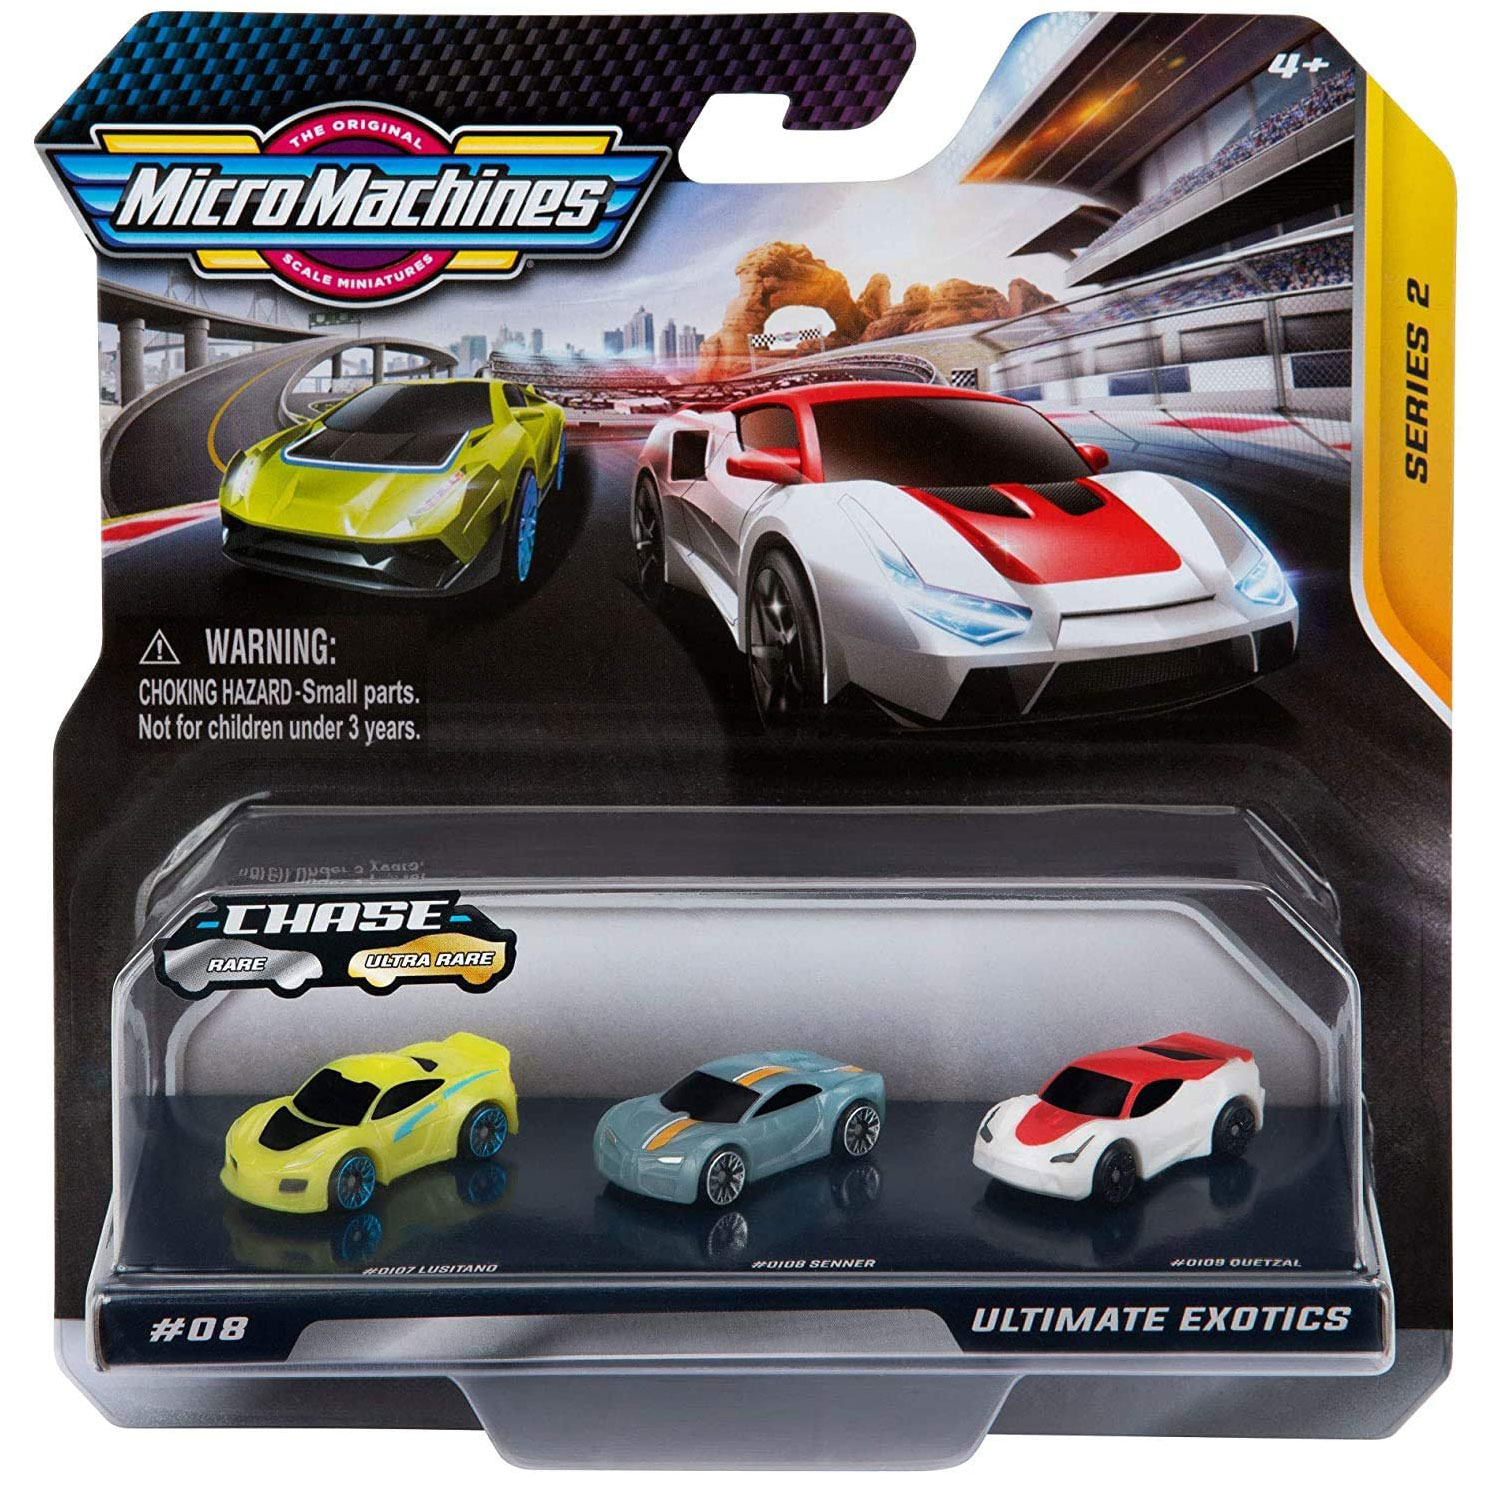 Micro Machines Starter Pack Series 2 - Ultimate Exotics